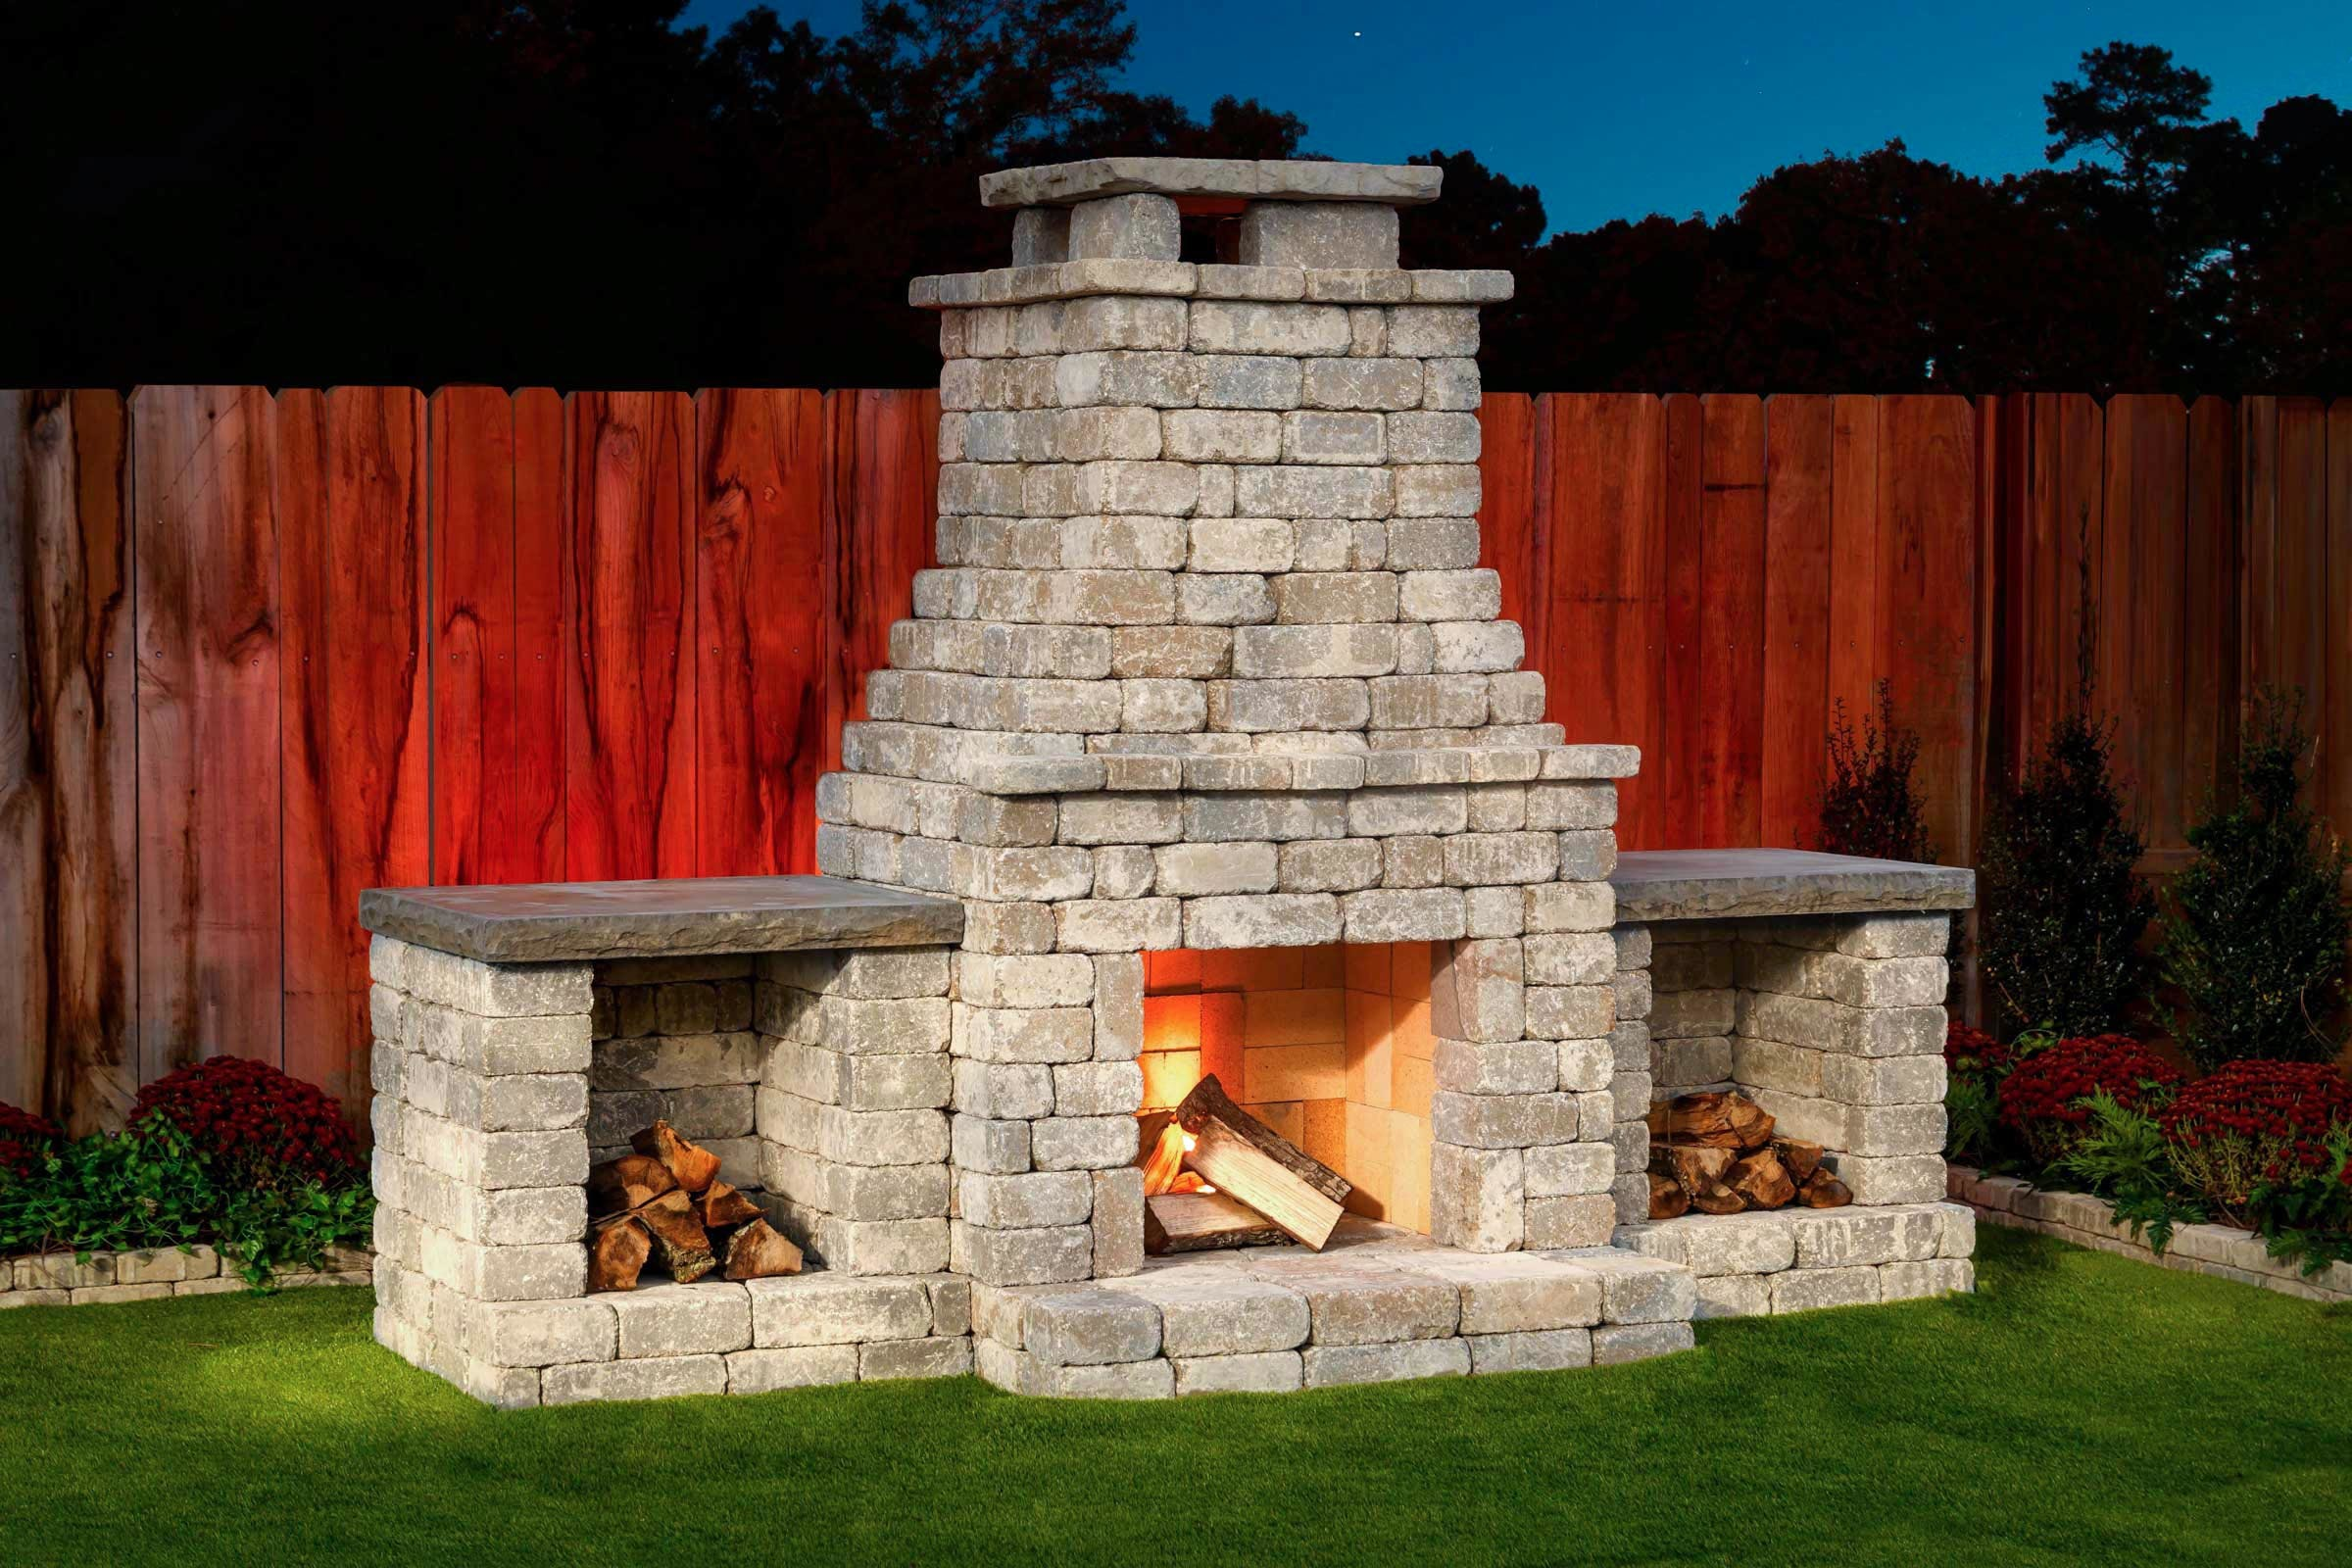 Fremont Fireplace Kit with optional wood storage boxes in Bethany Ledge Blend